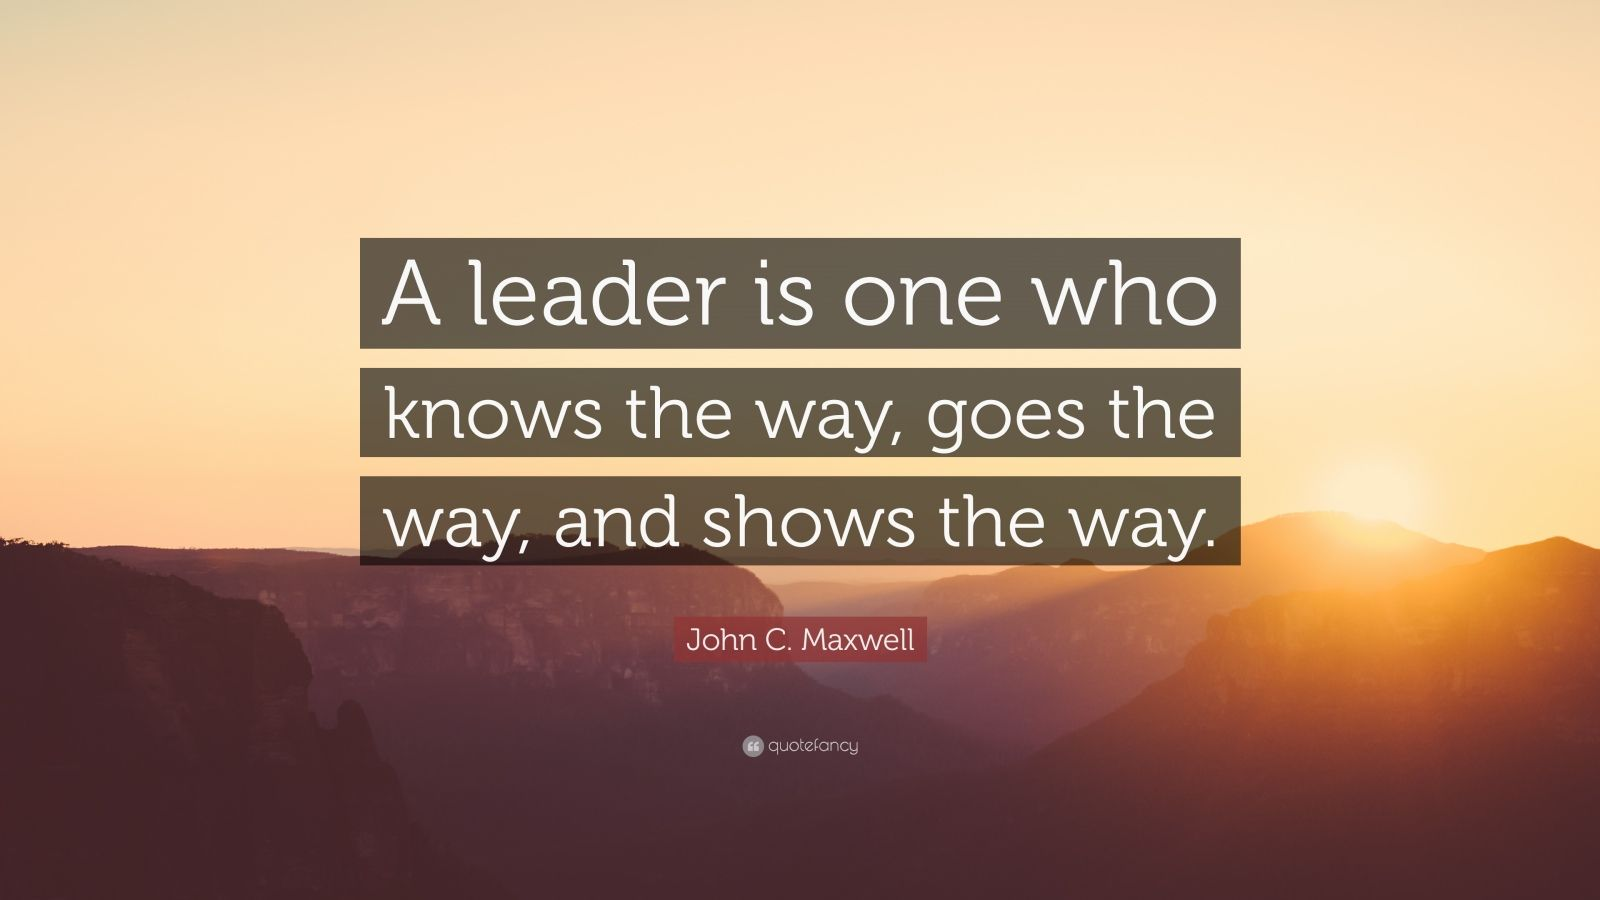 Inspiring Quotes With Wallpapers John C Maxwell Quote A Leader Is One Who Knows The Way